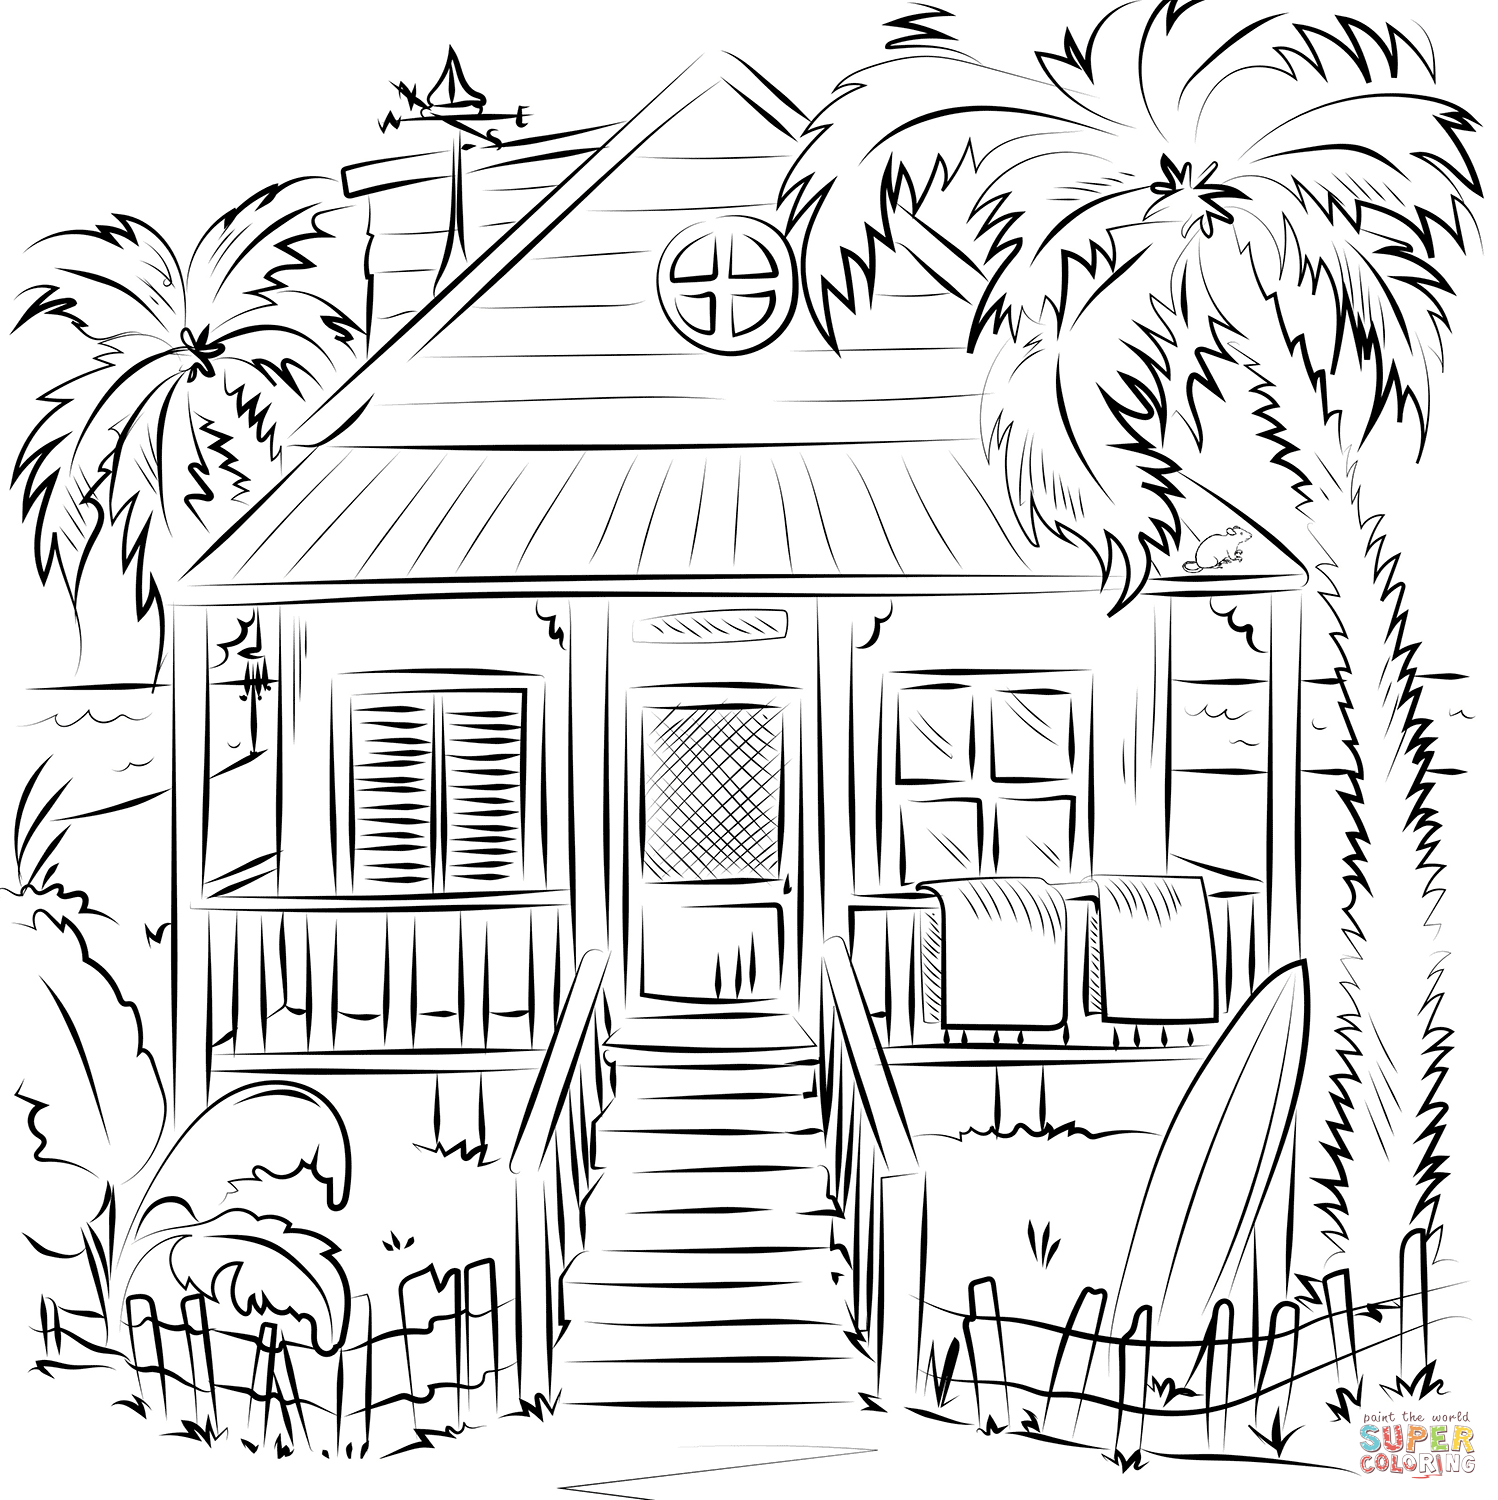 coloring pages house beach house coloring page free printable coloring pages pages coloring house